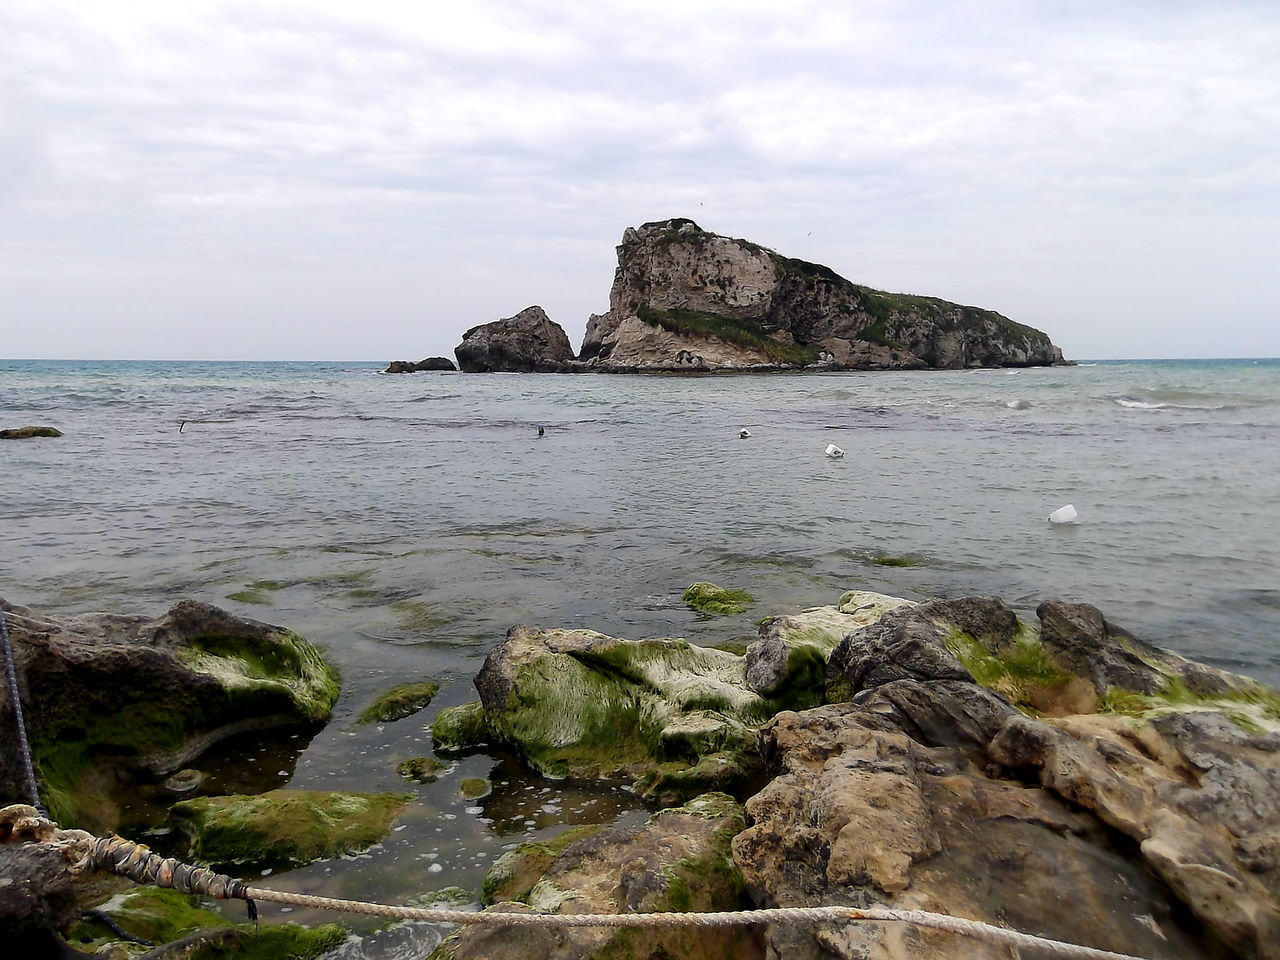 Agrigento Beach Beauty In Nature Cielo Nuvoloso Horizon Over Water Licata Mare Muschio Nature No People Outdoors Rocca Di San Nicola Rocce Rock - Object Sea Sicily Sky Tranquil Scene Tranquility Water